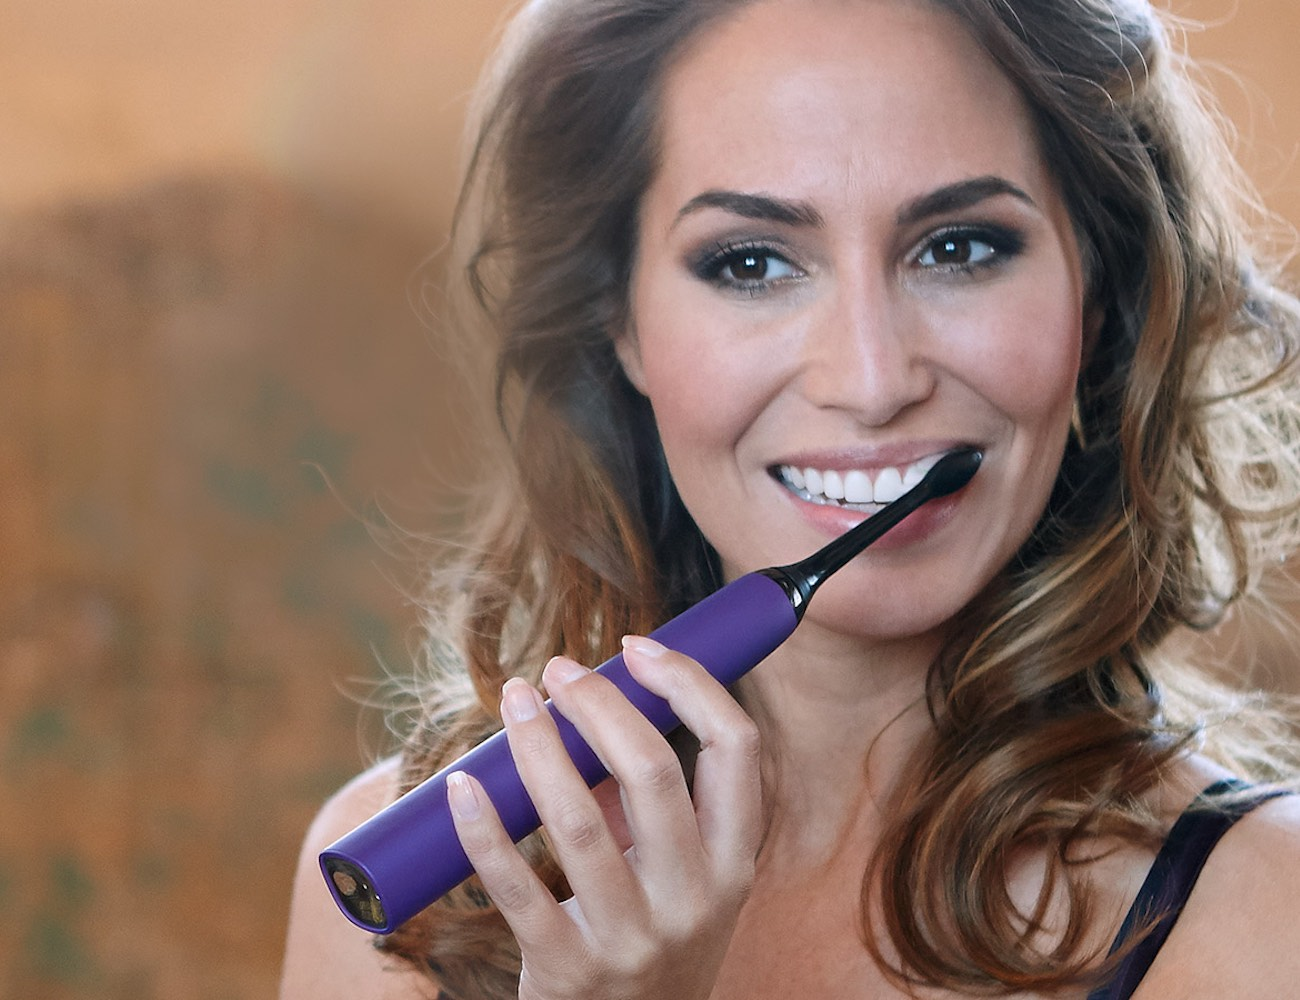 Sonicare+DiamondClean+Electric+Toothbrush+By+Philips